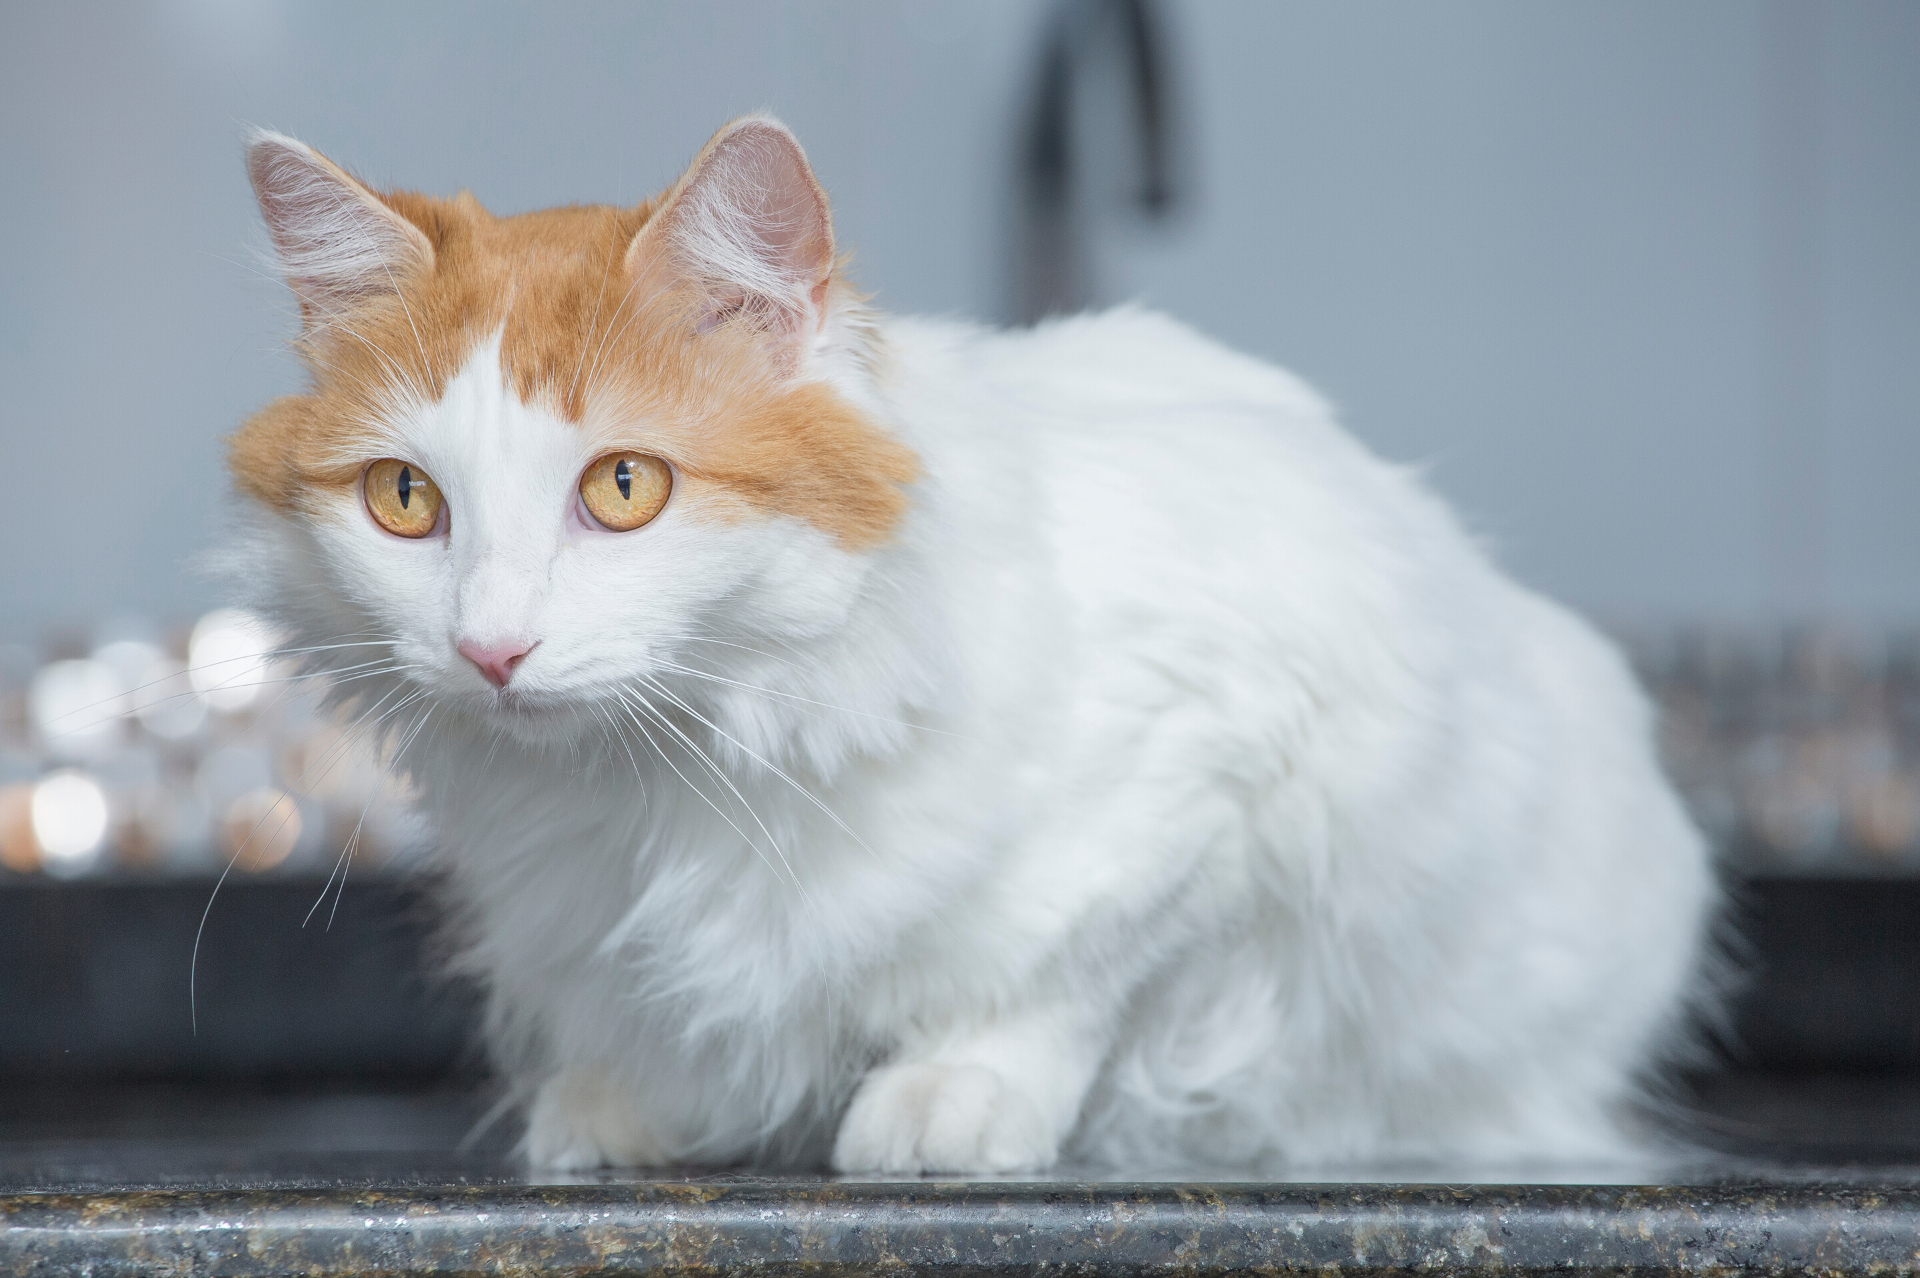 A Turkish Van ready to pounce